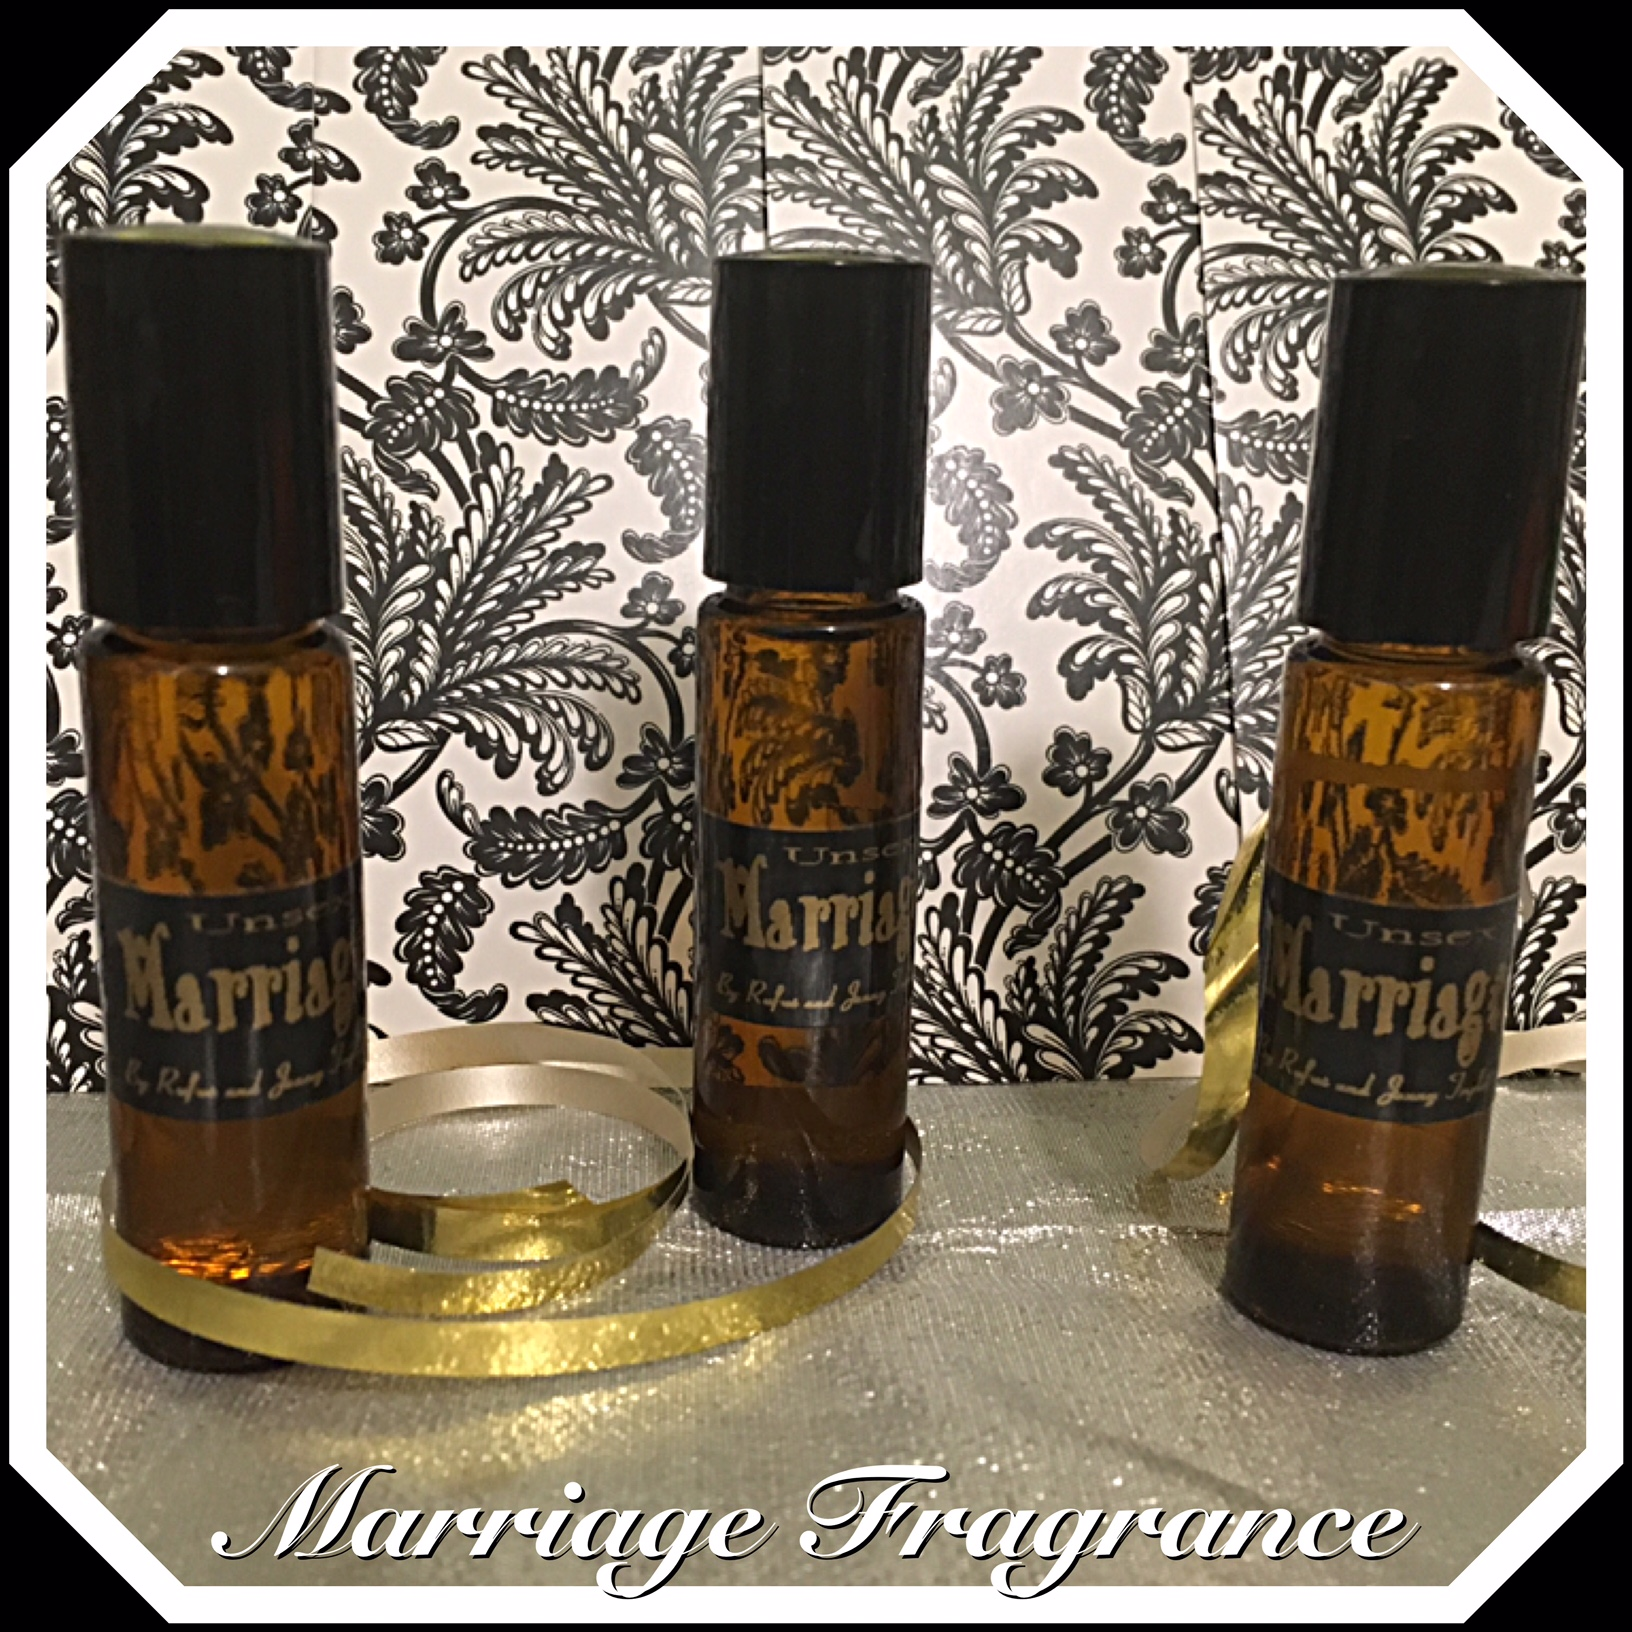 Marriage Fragrance 10 ML